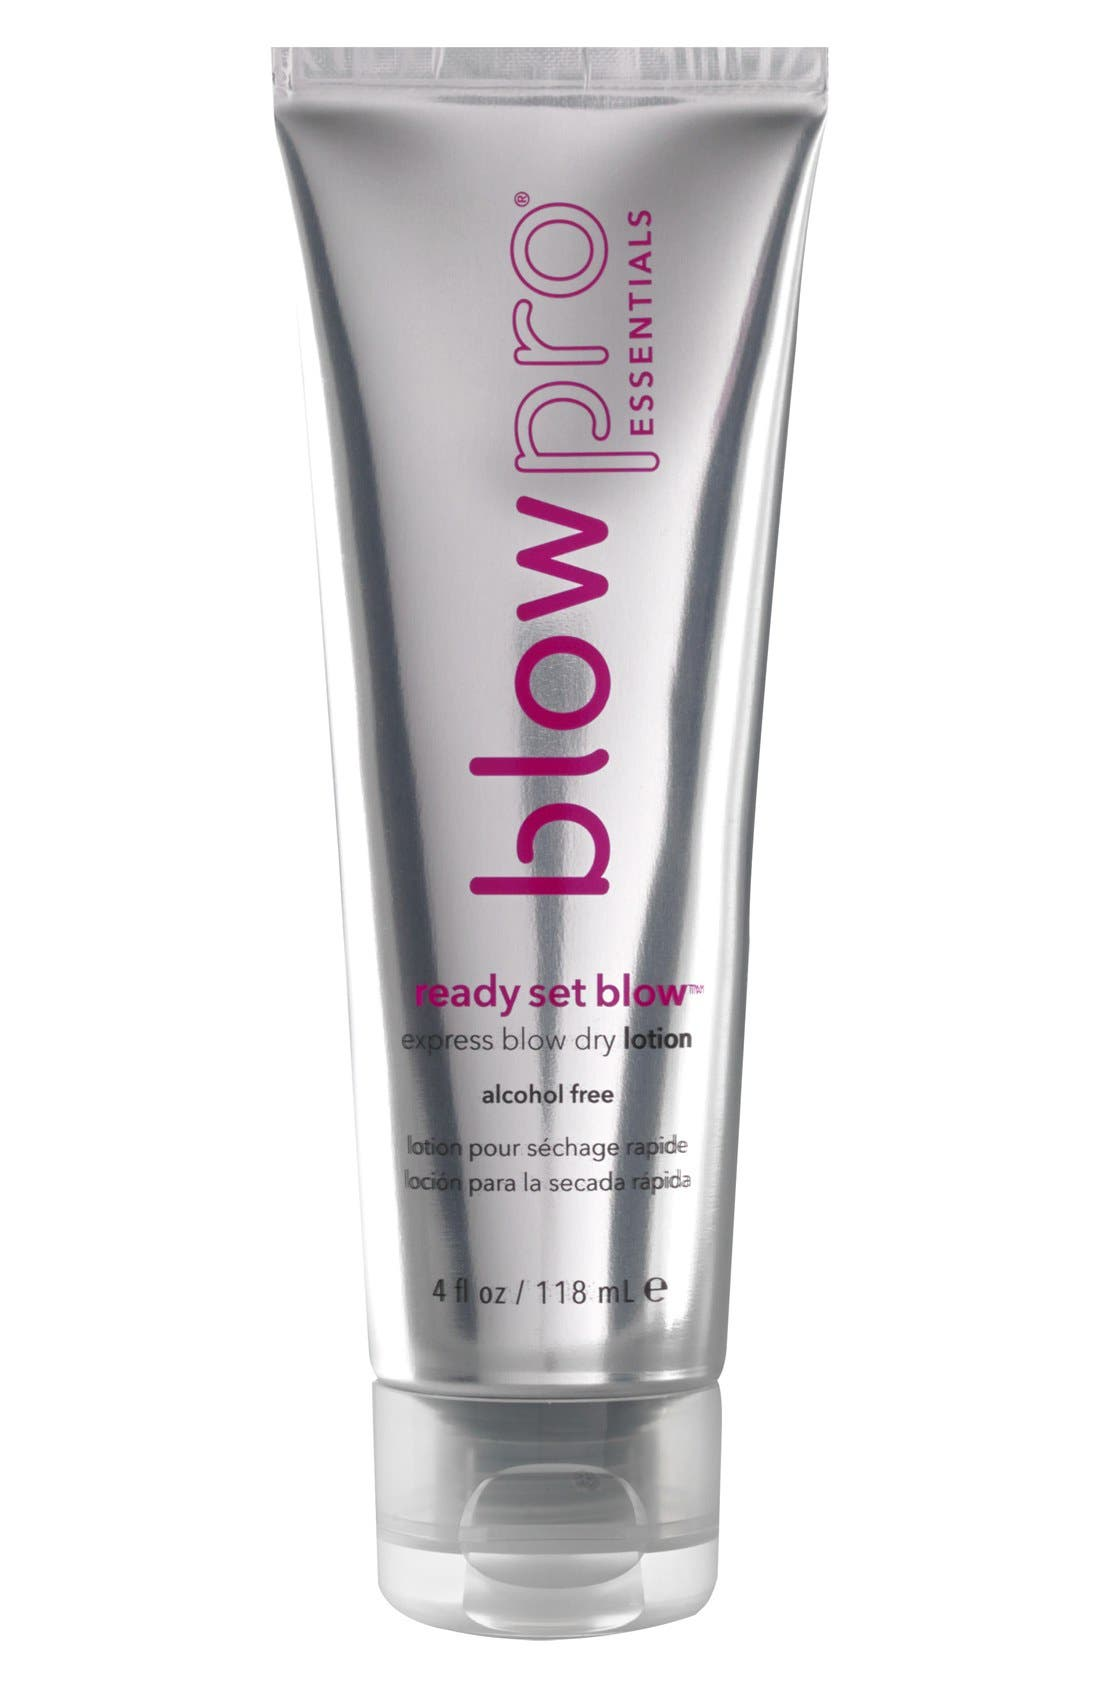 blowpro® 'ready set blow™' express blow dry lotion